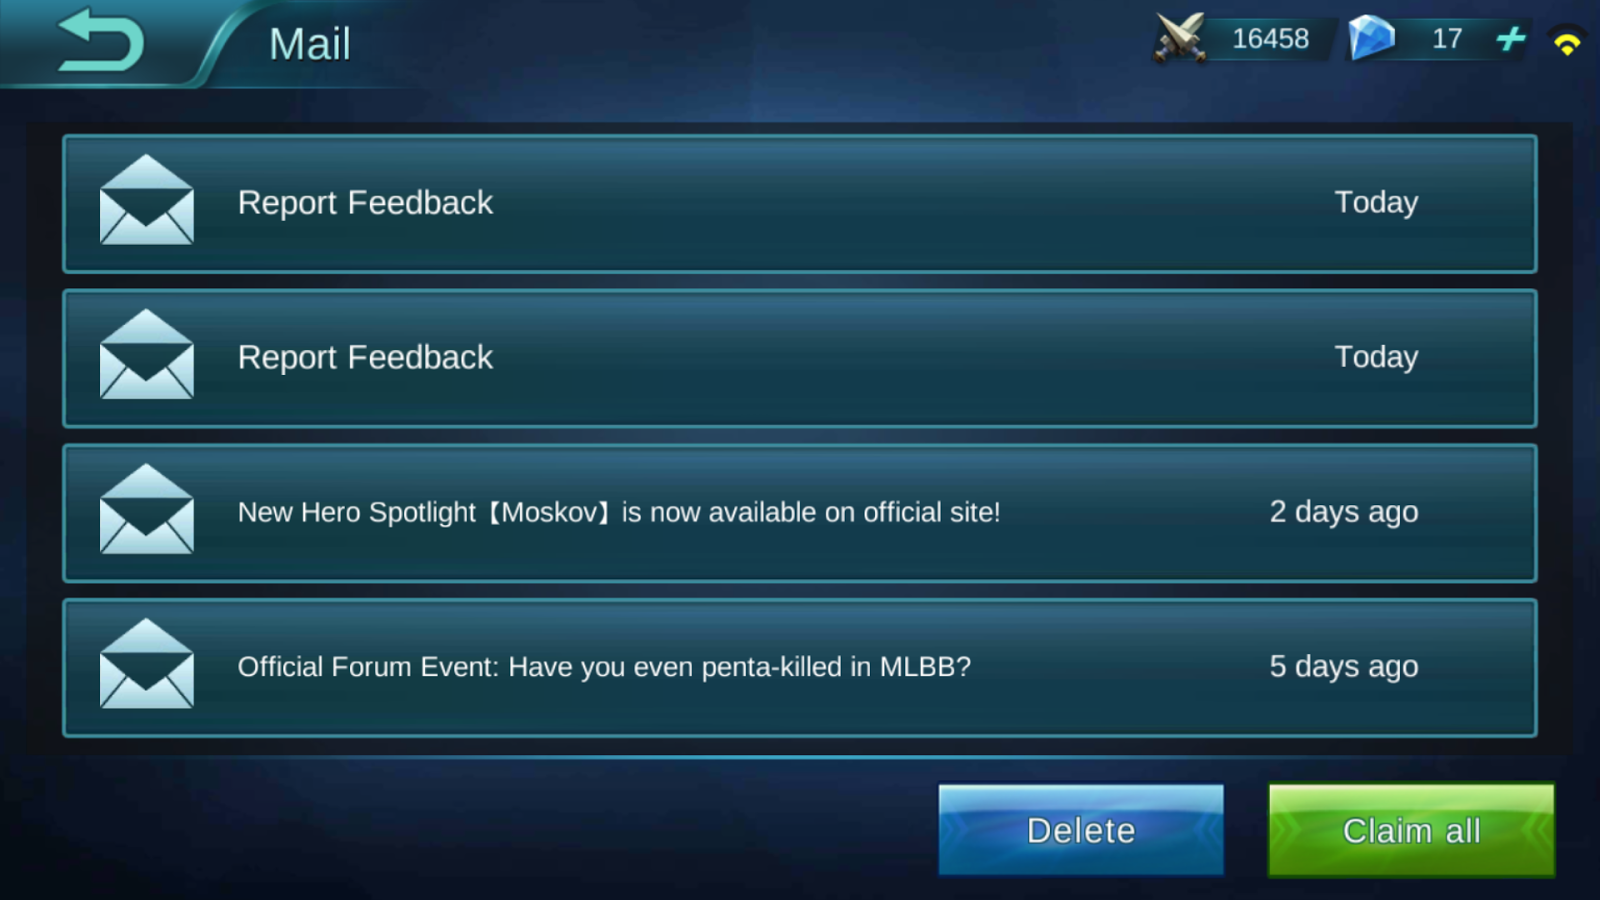 Mobile Legends Bang Bang: How to Report Quitter, Feeder, AFK players